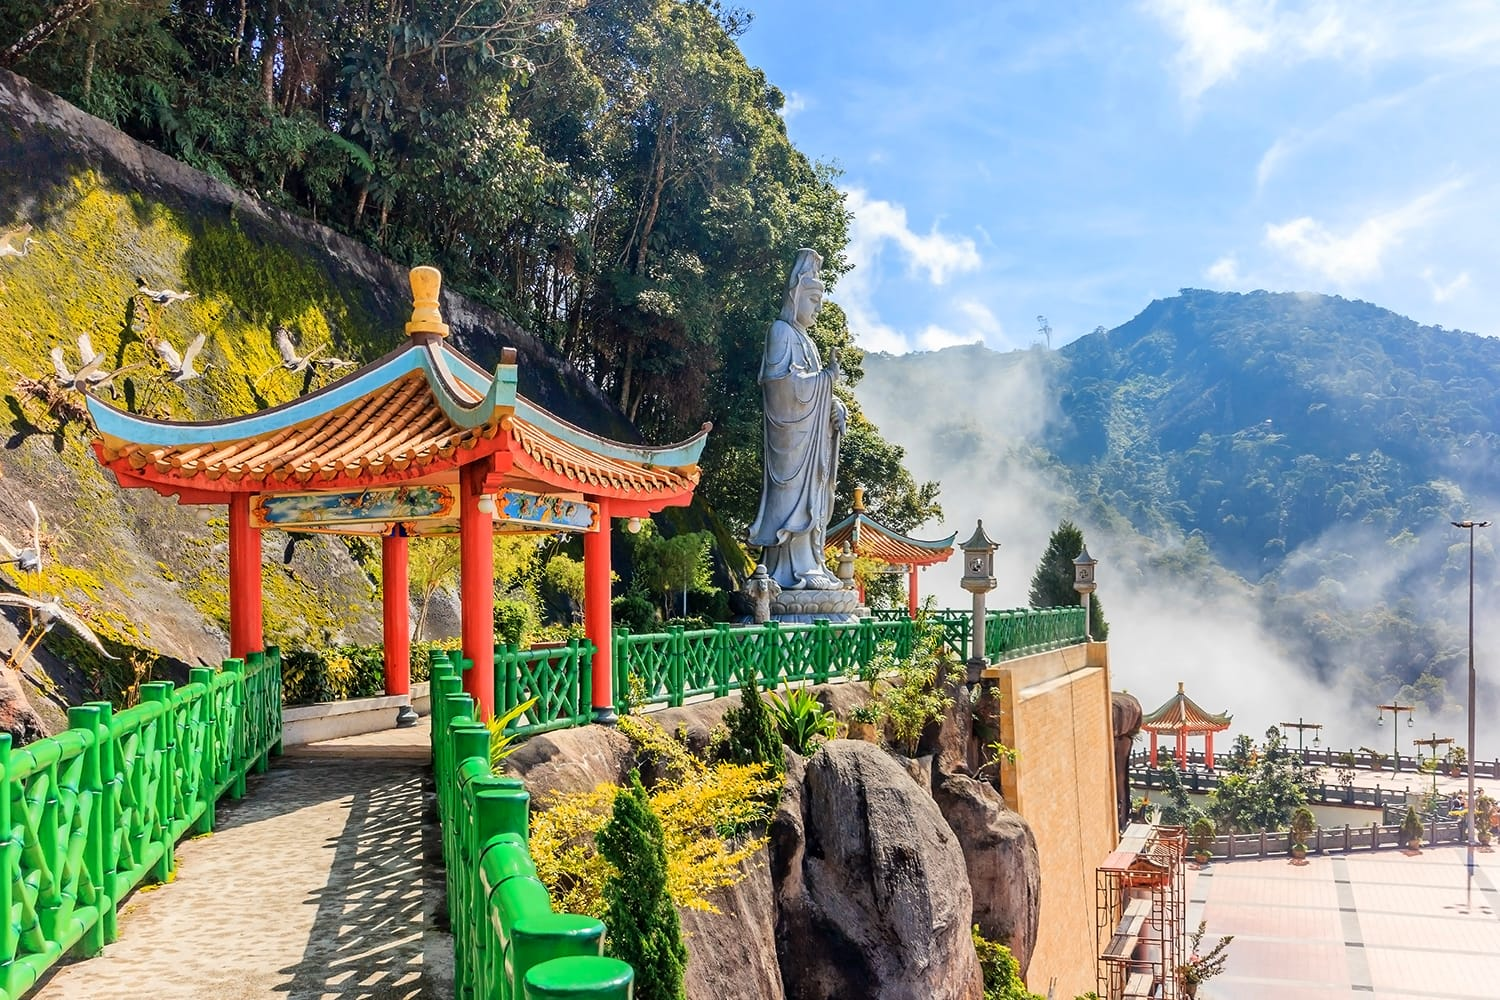 The scenic site of Chin Swee Caves Temple, Genting Highland, Malaysia. - The Chin Swee Caves Temple is situated in the most scenic site of Genting Highlands.